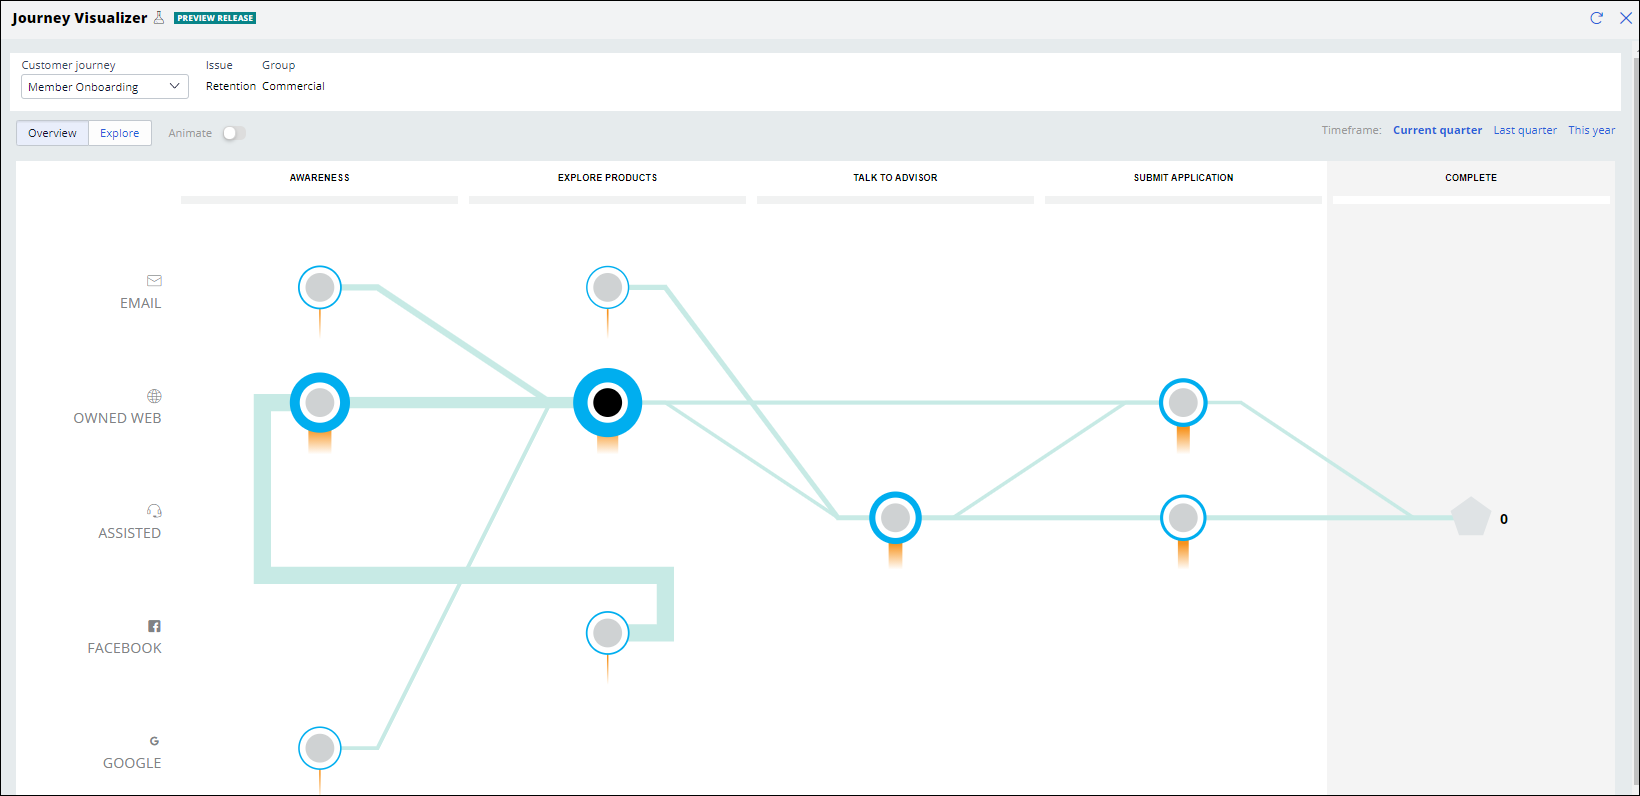 Aggregated visualization of the customer journey